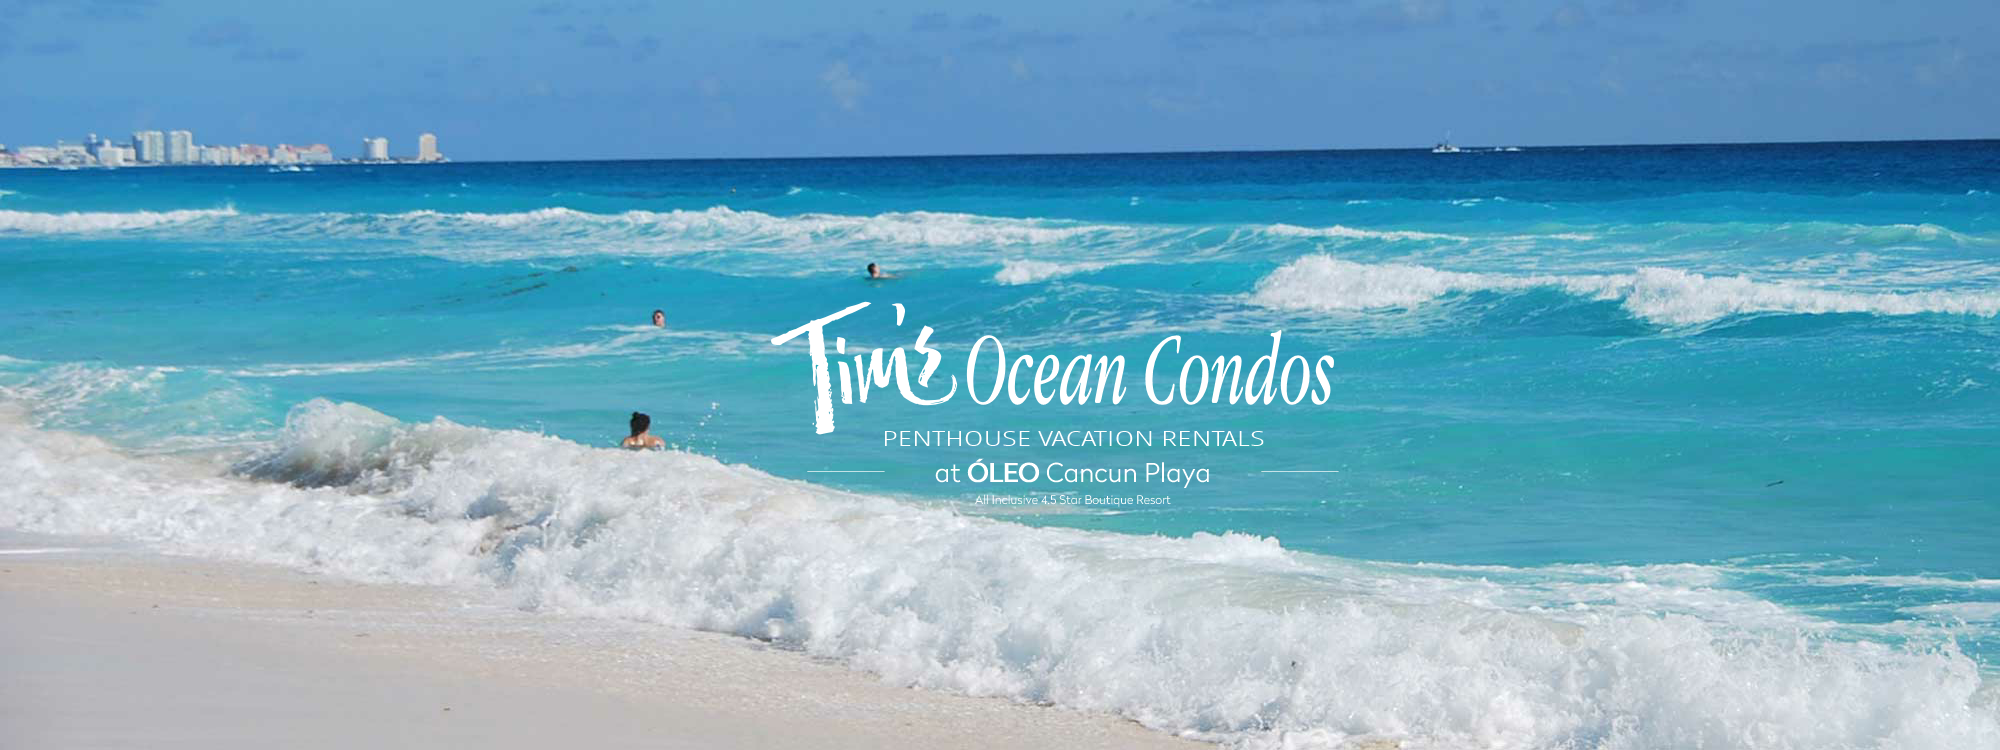 cancun vacation rentals on the ocean